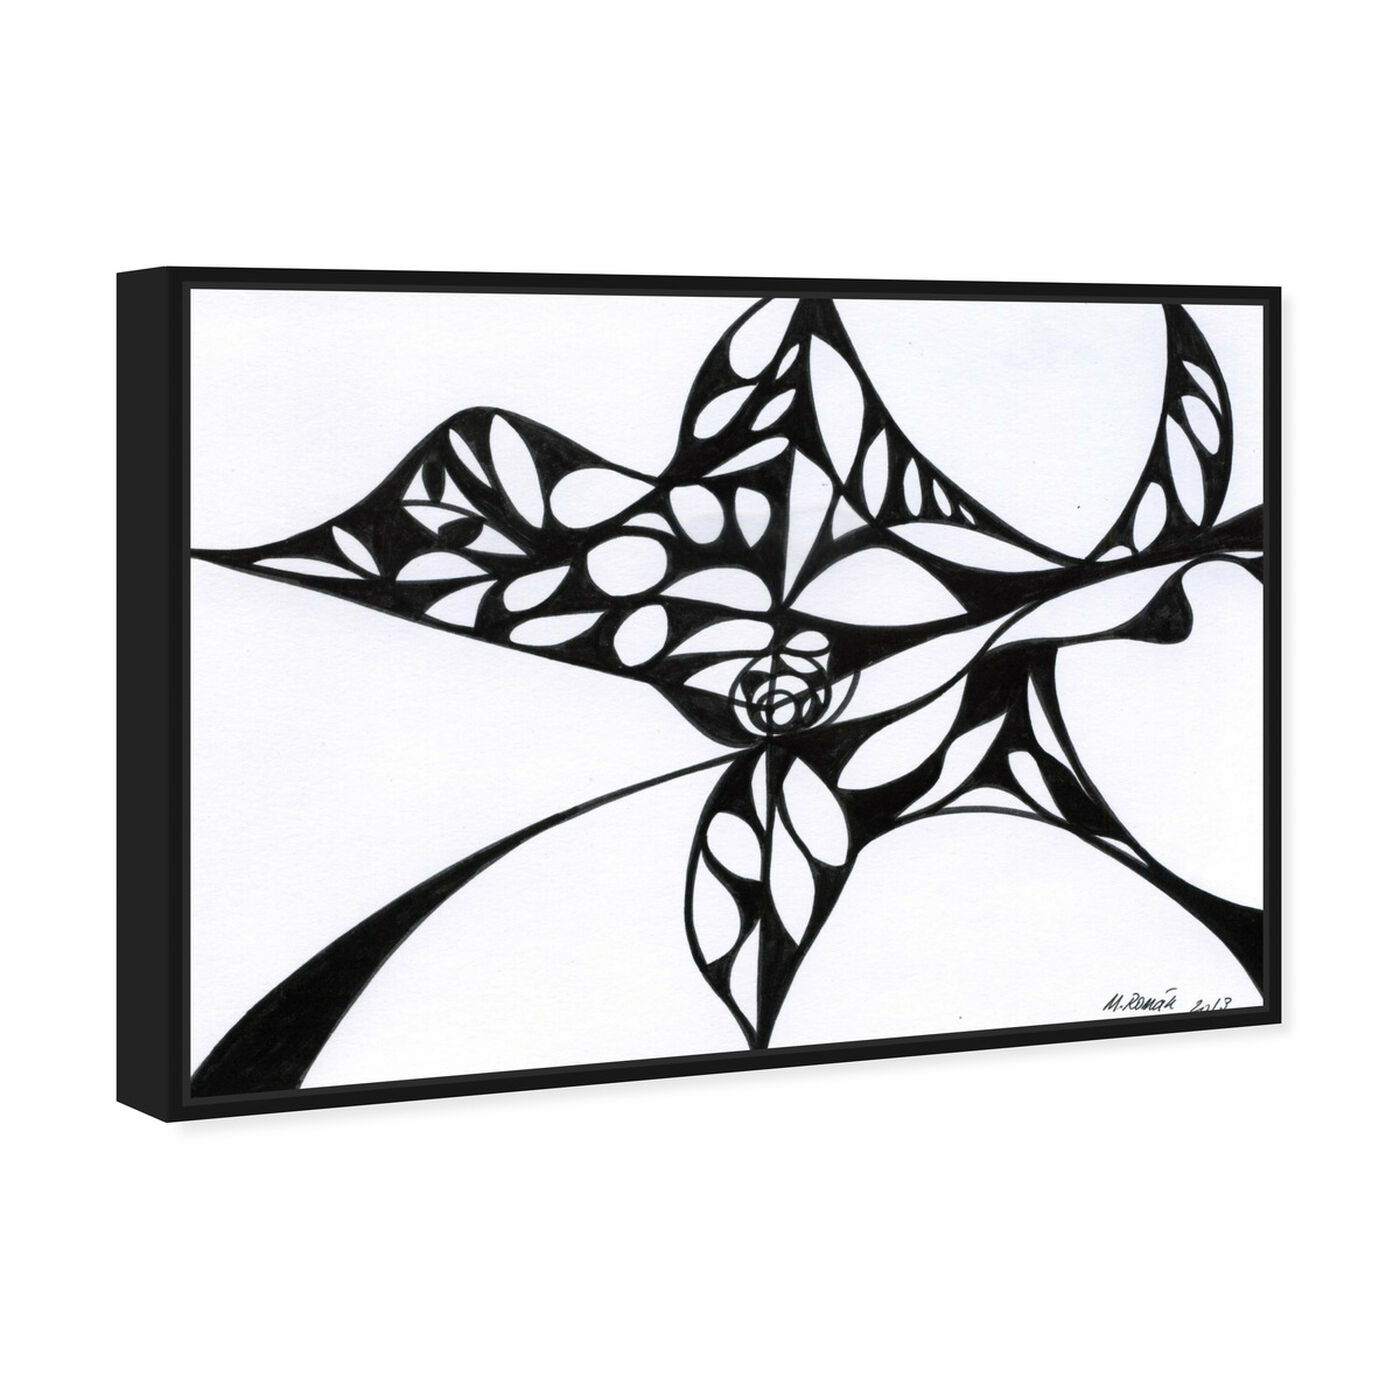 Angled view of Black Iris featuring abstract and geometric art.